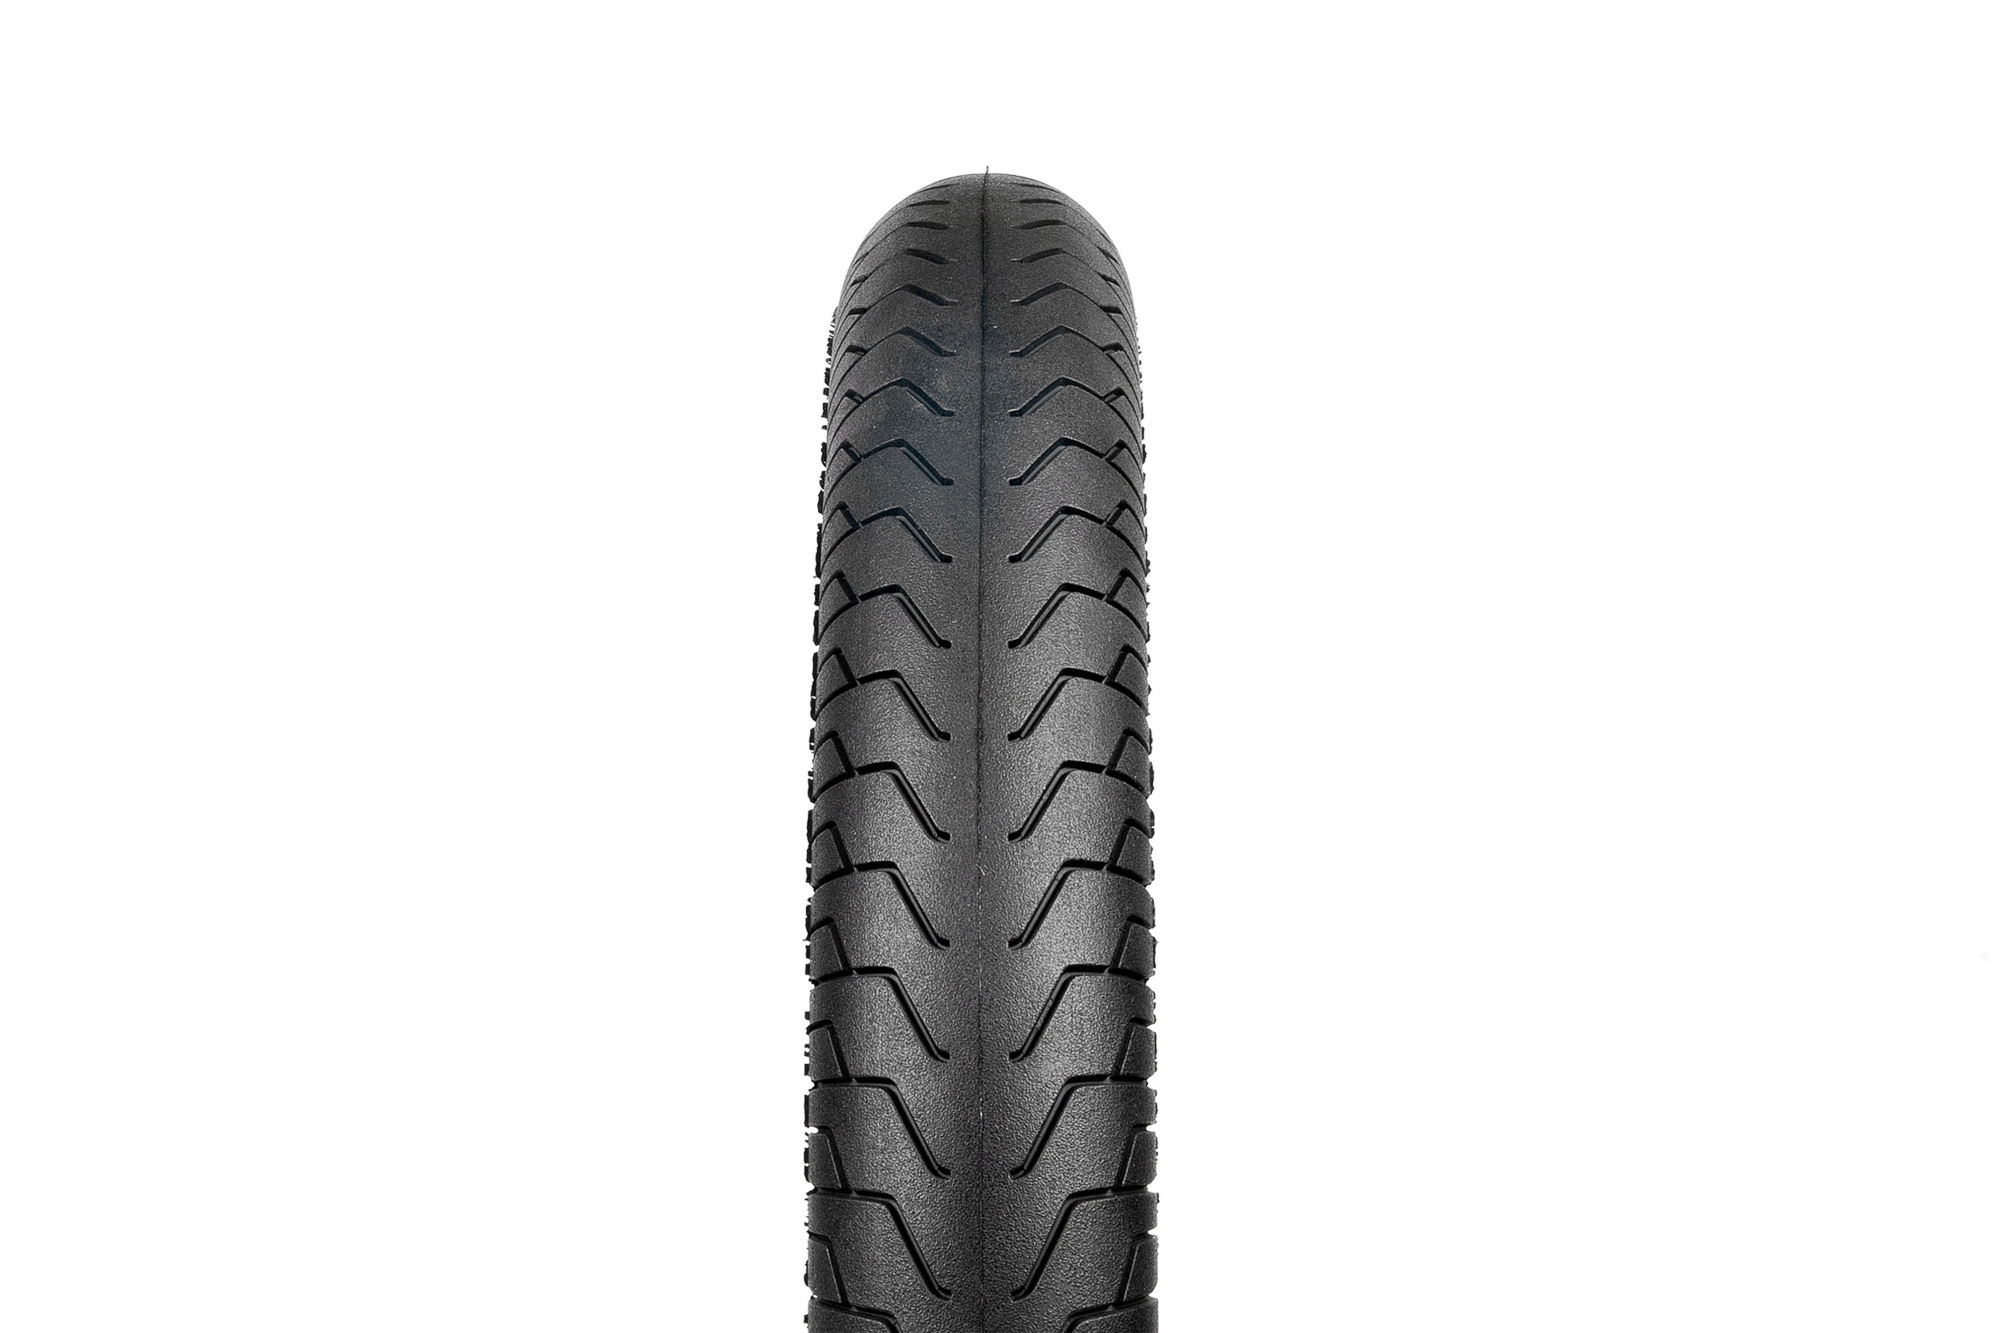 SaltPlus_Pitch_Slick_tire_black_02